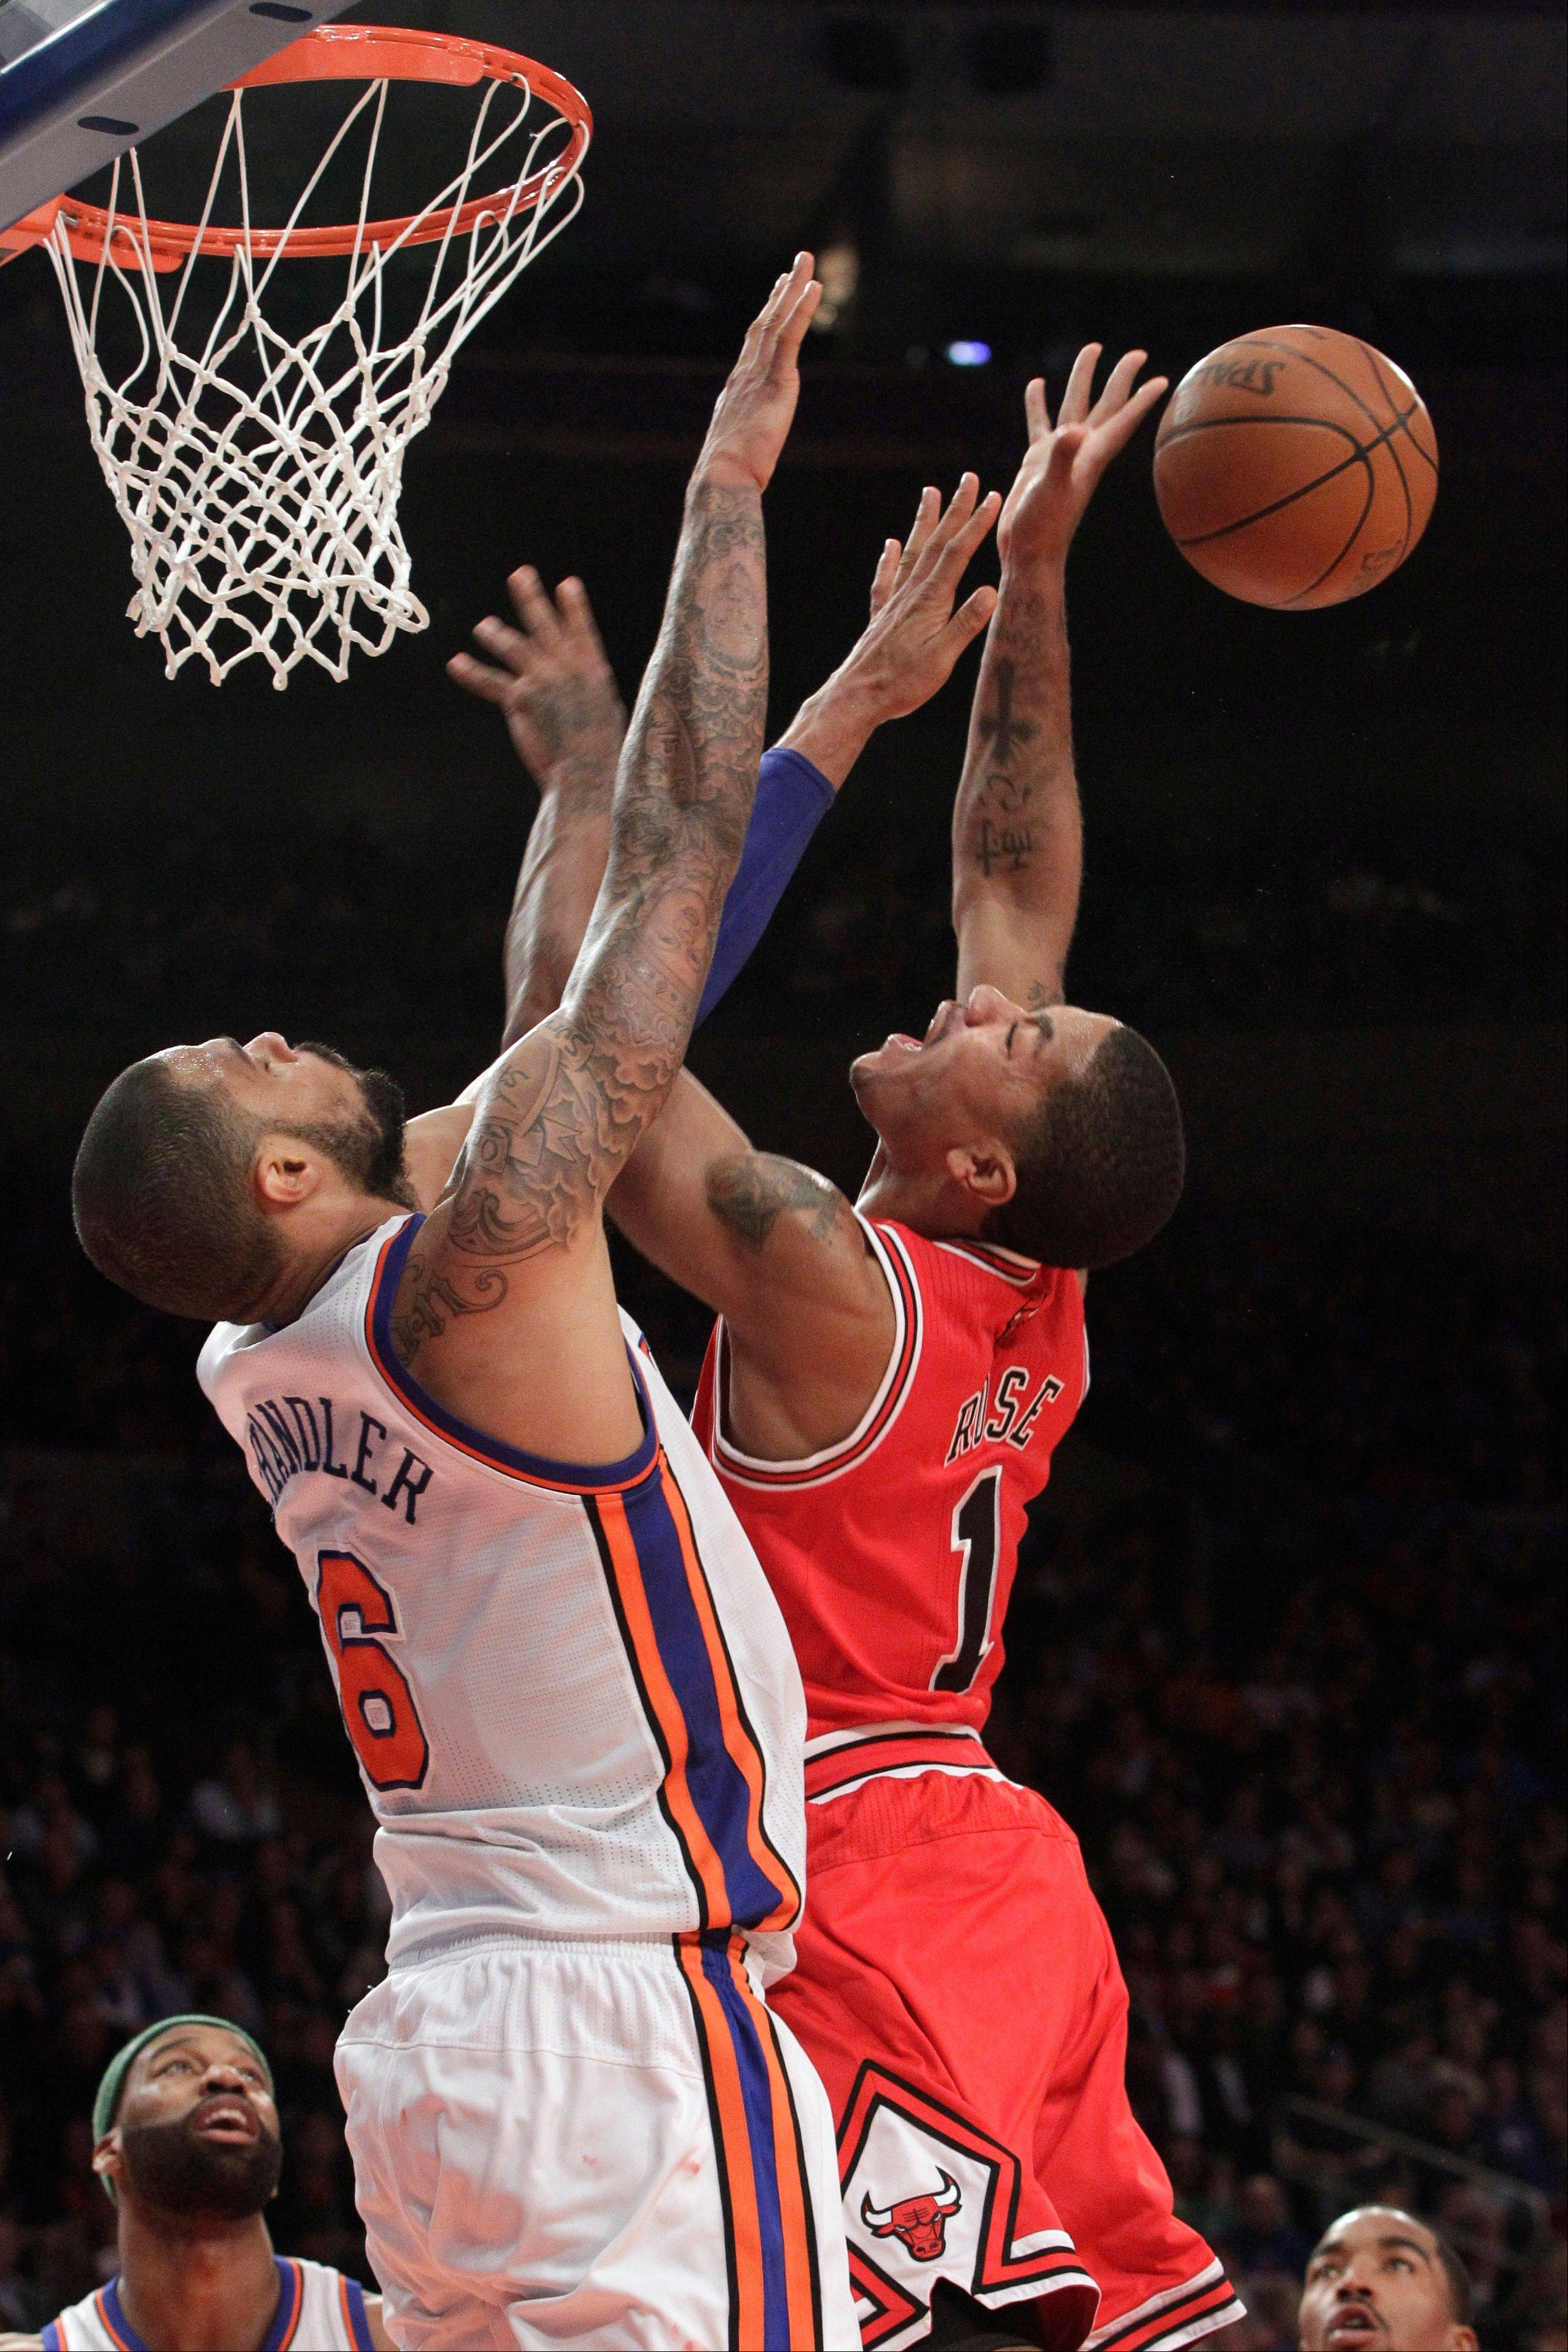 New York Knicks' Tyson Chandler, left, blocks a shot by Chicago Bulls' Derrick Rose during the second half of an NBA basketball game, Sunday, April 8, 2012, at Madison Square Garden in New York. The Knicks won 100-99 in overtime. (AP Photo/Mary Altaffer)